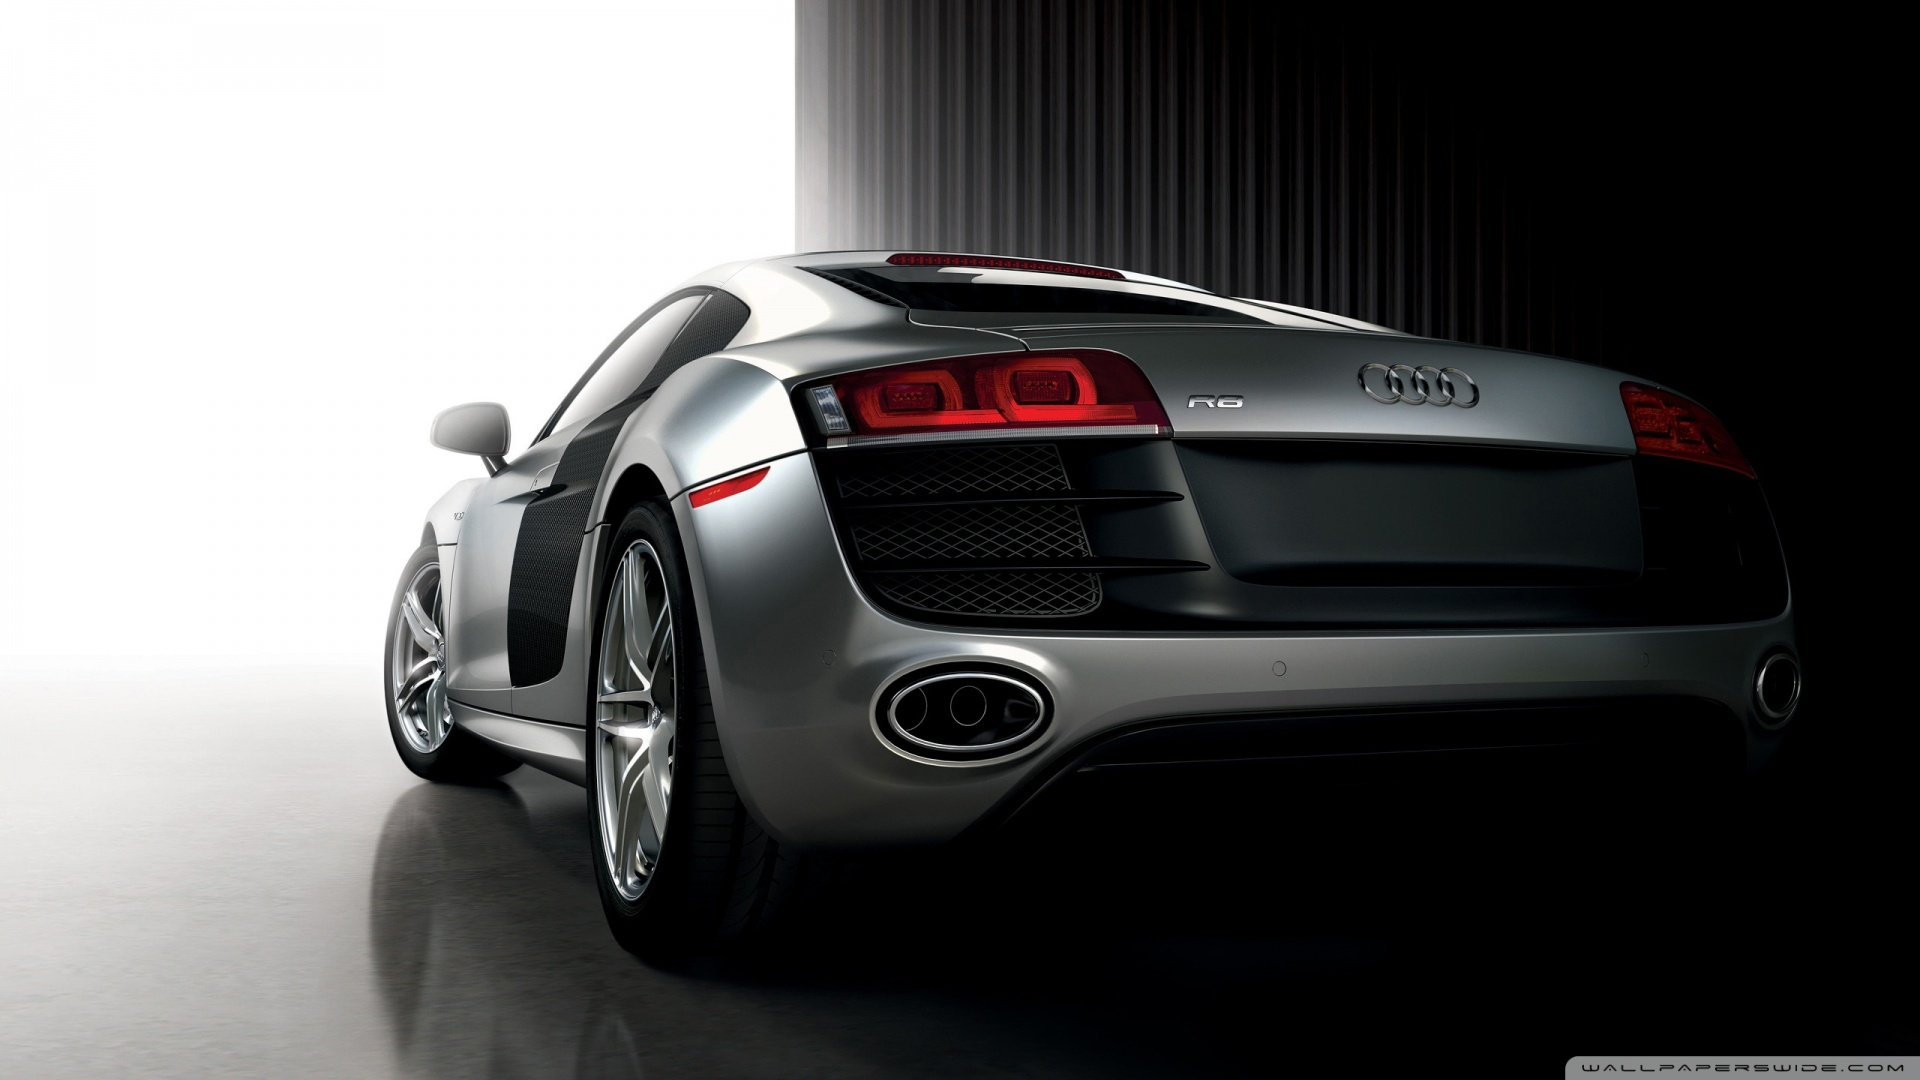 43 Audi WallpapersBackgrounds In HD For Download 1920x1080